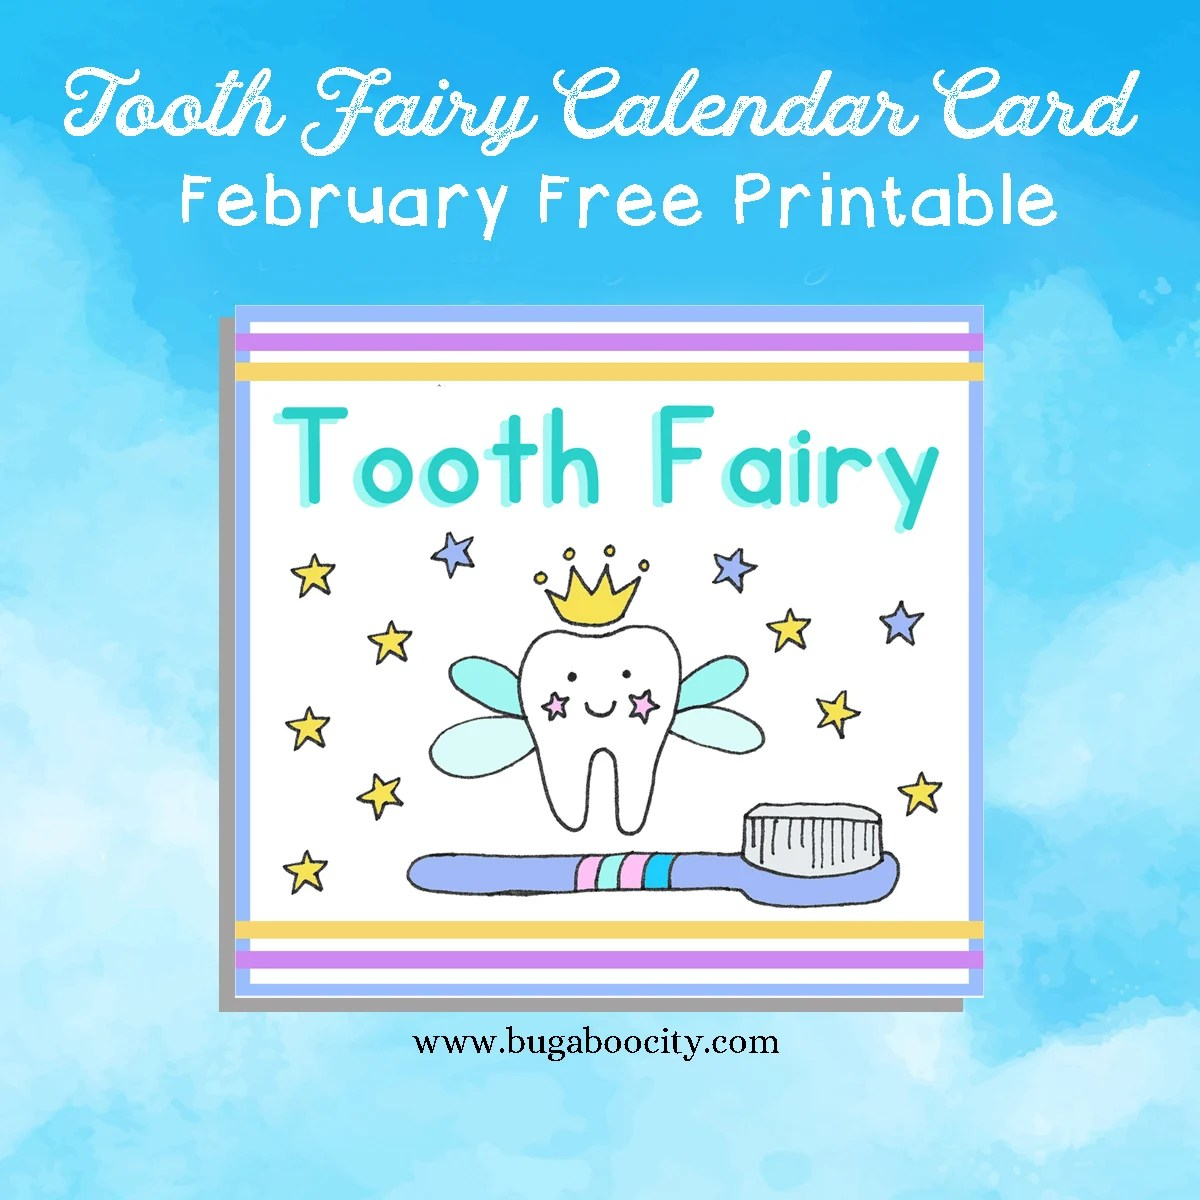 picture relating to Tooth Fairy Card Printable named No cost Every month Calendar Card - Composing Cheerfully